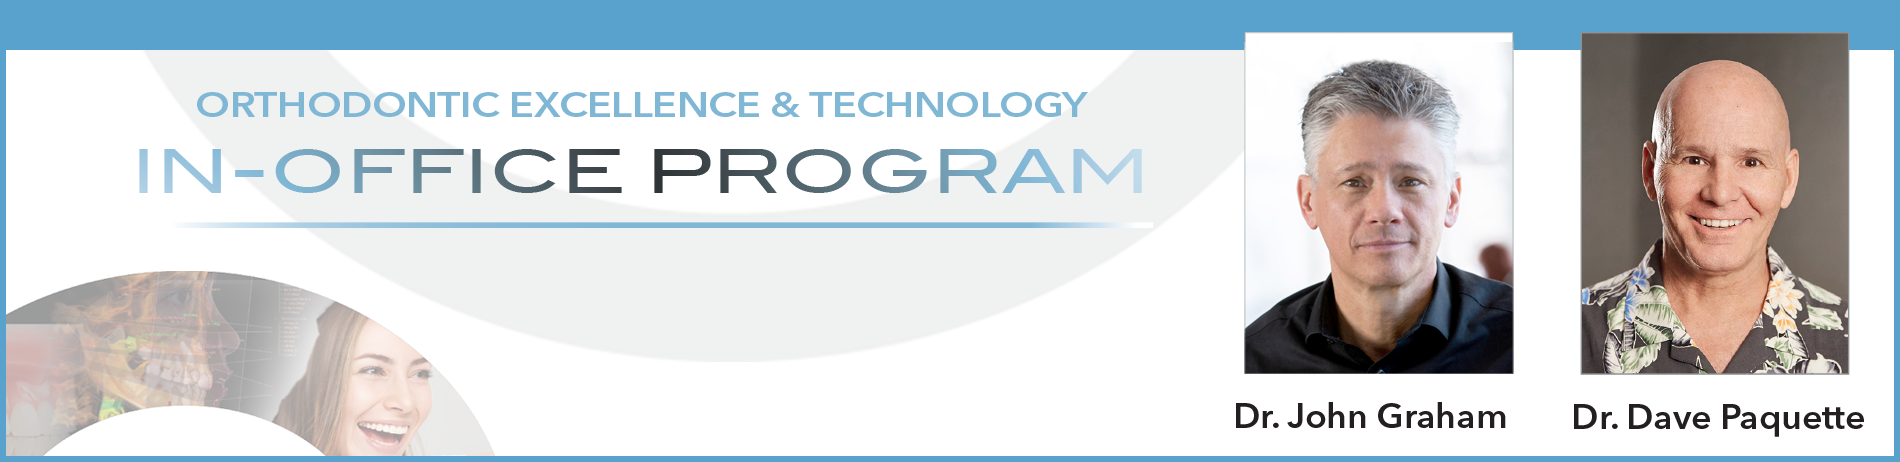 Orthodontic Excellence and Technology: In-Office Program